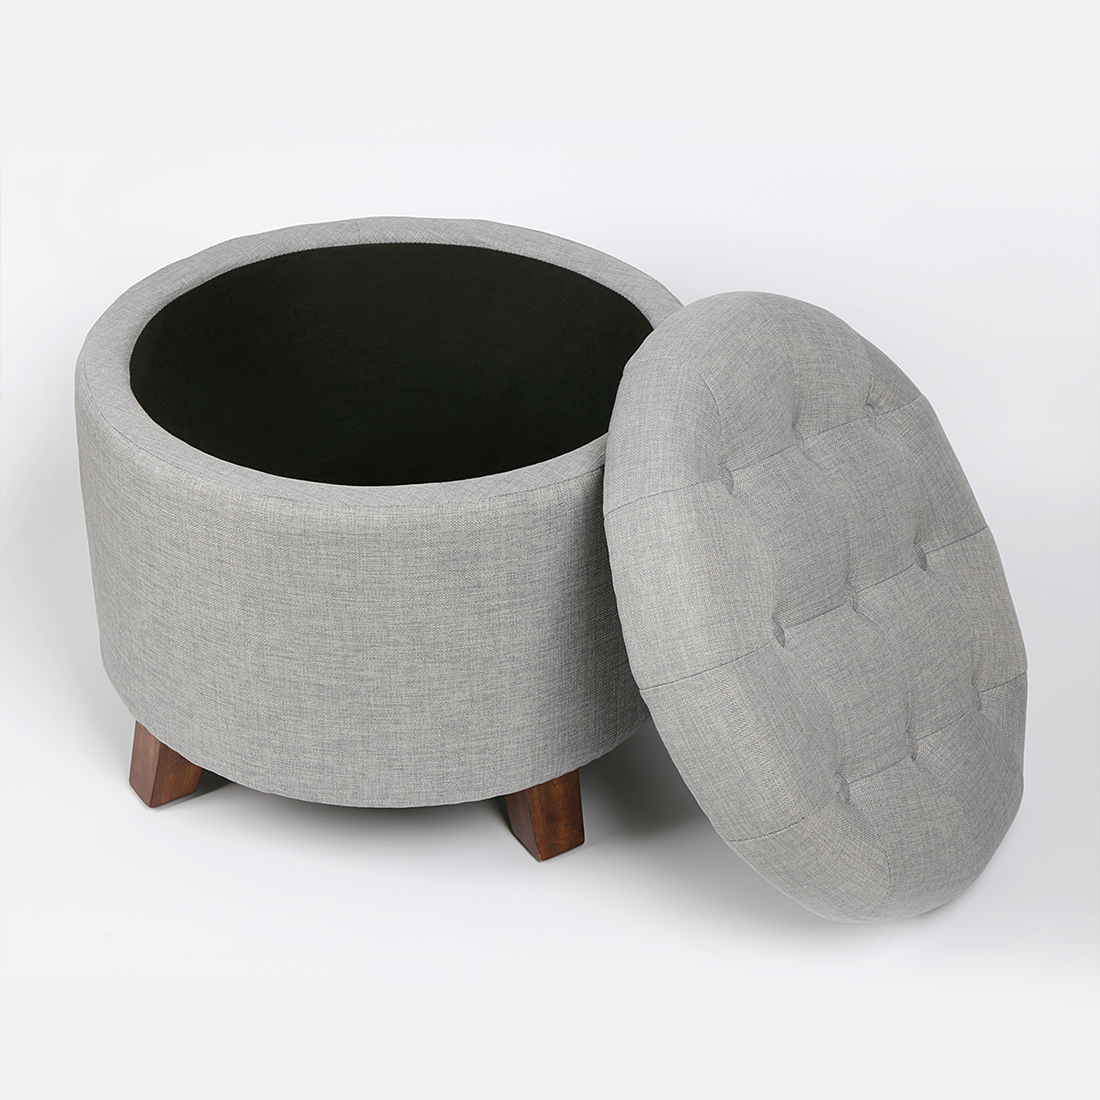 Soft-Round-Footstool-Storage-Ottoman-Stool-with-Button- & Soft Round Footstool Storage Ottoman Stool with Button Tufted Top ... islam-shia.org